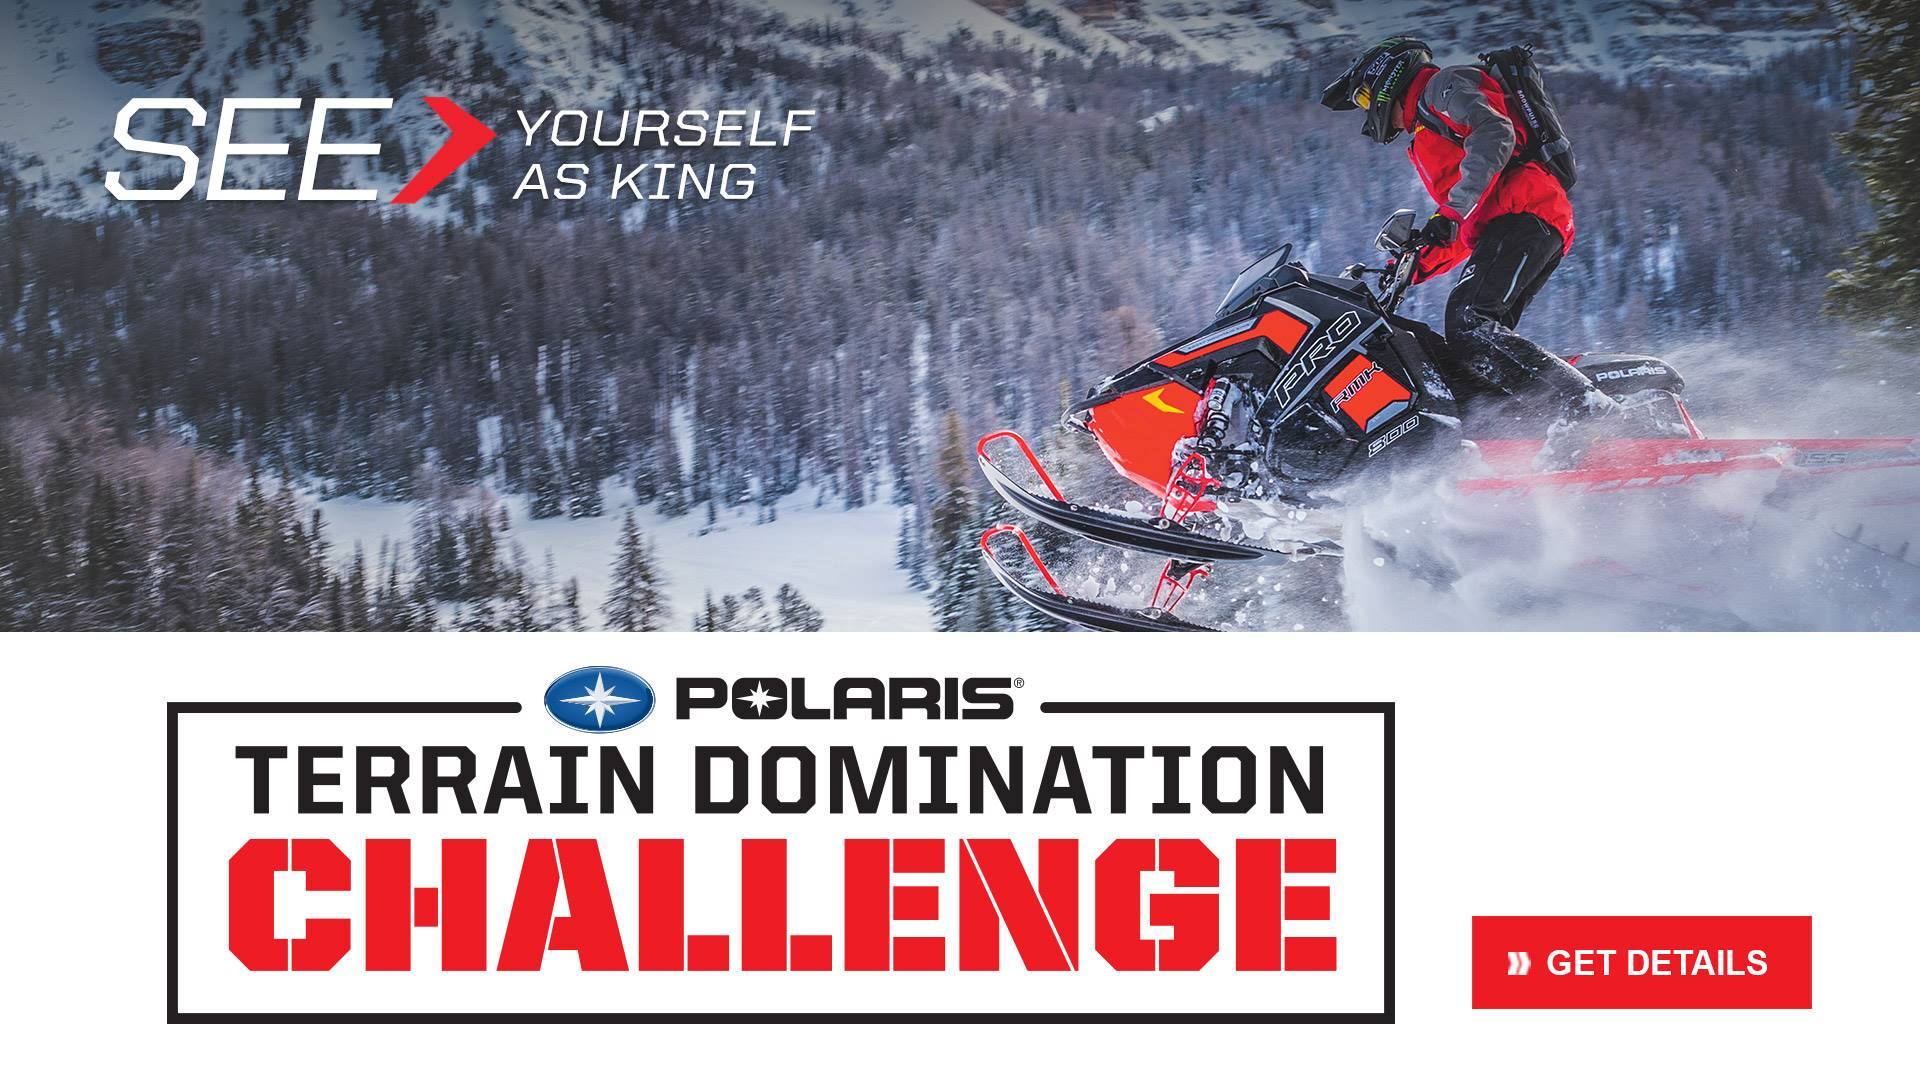 Polaris Snowmobiles - Terrain Domination Challenge